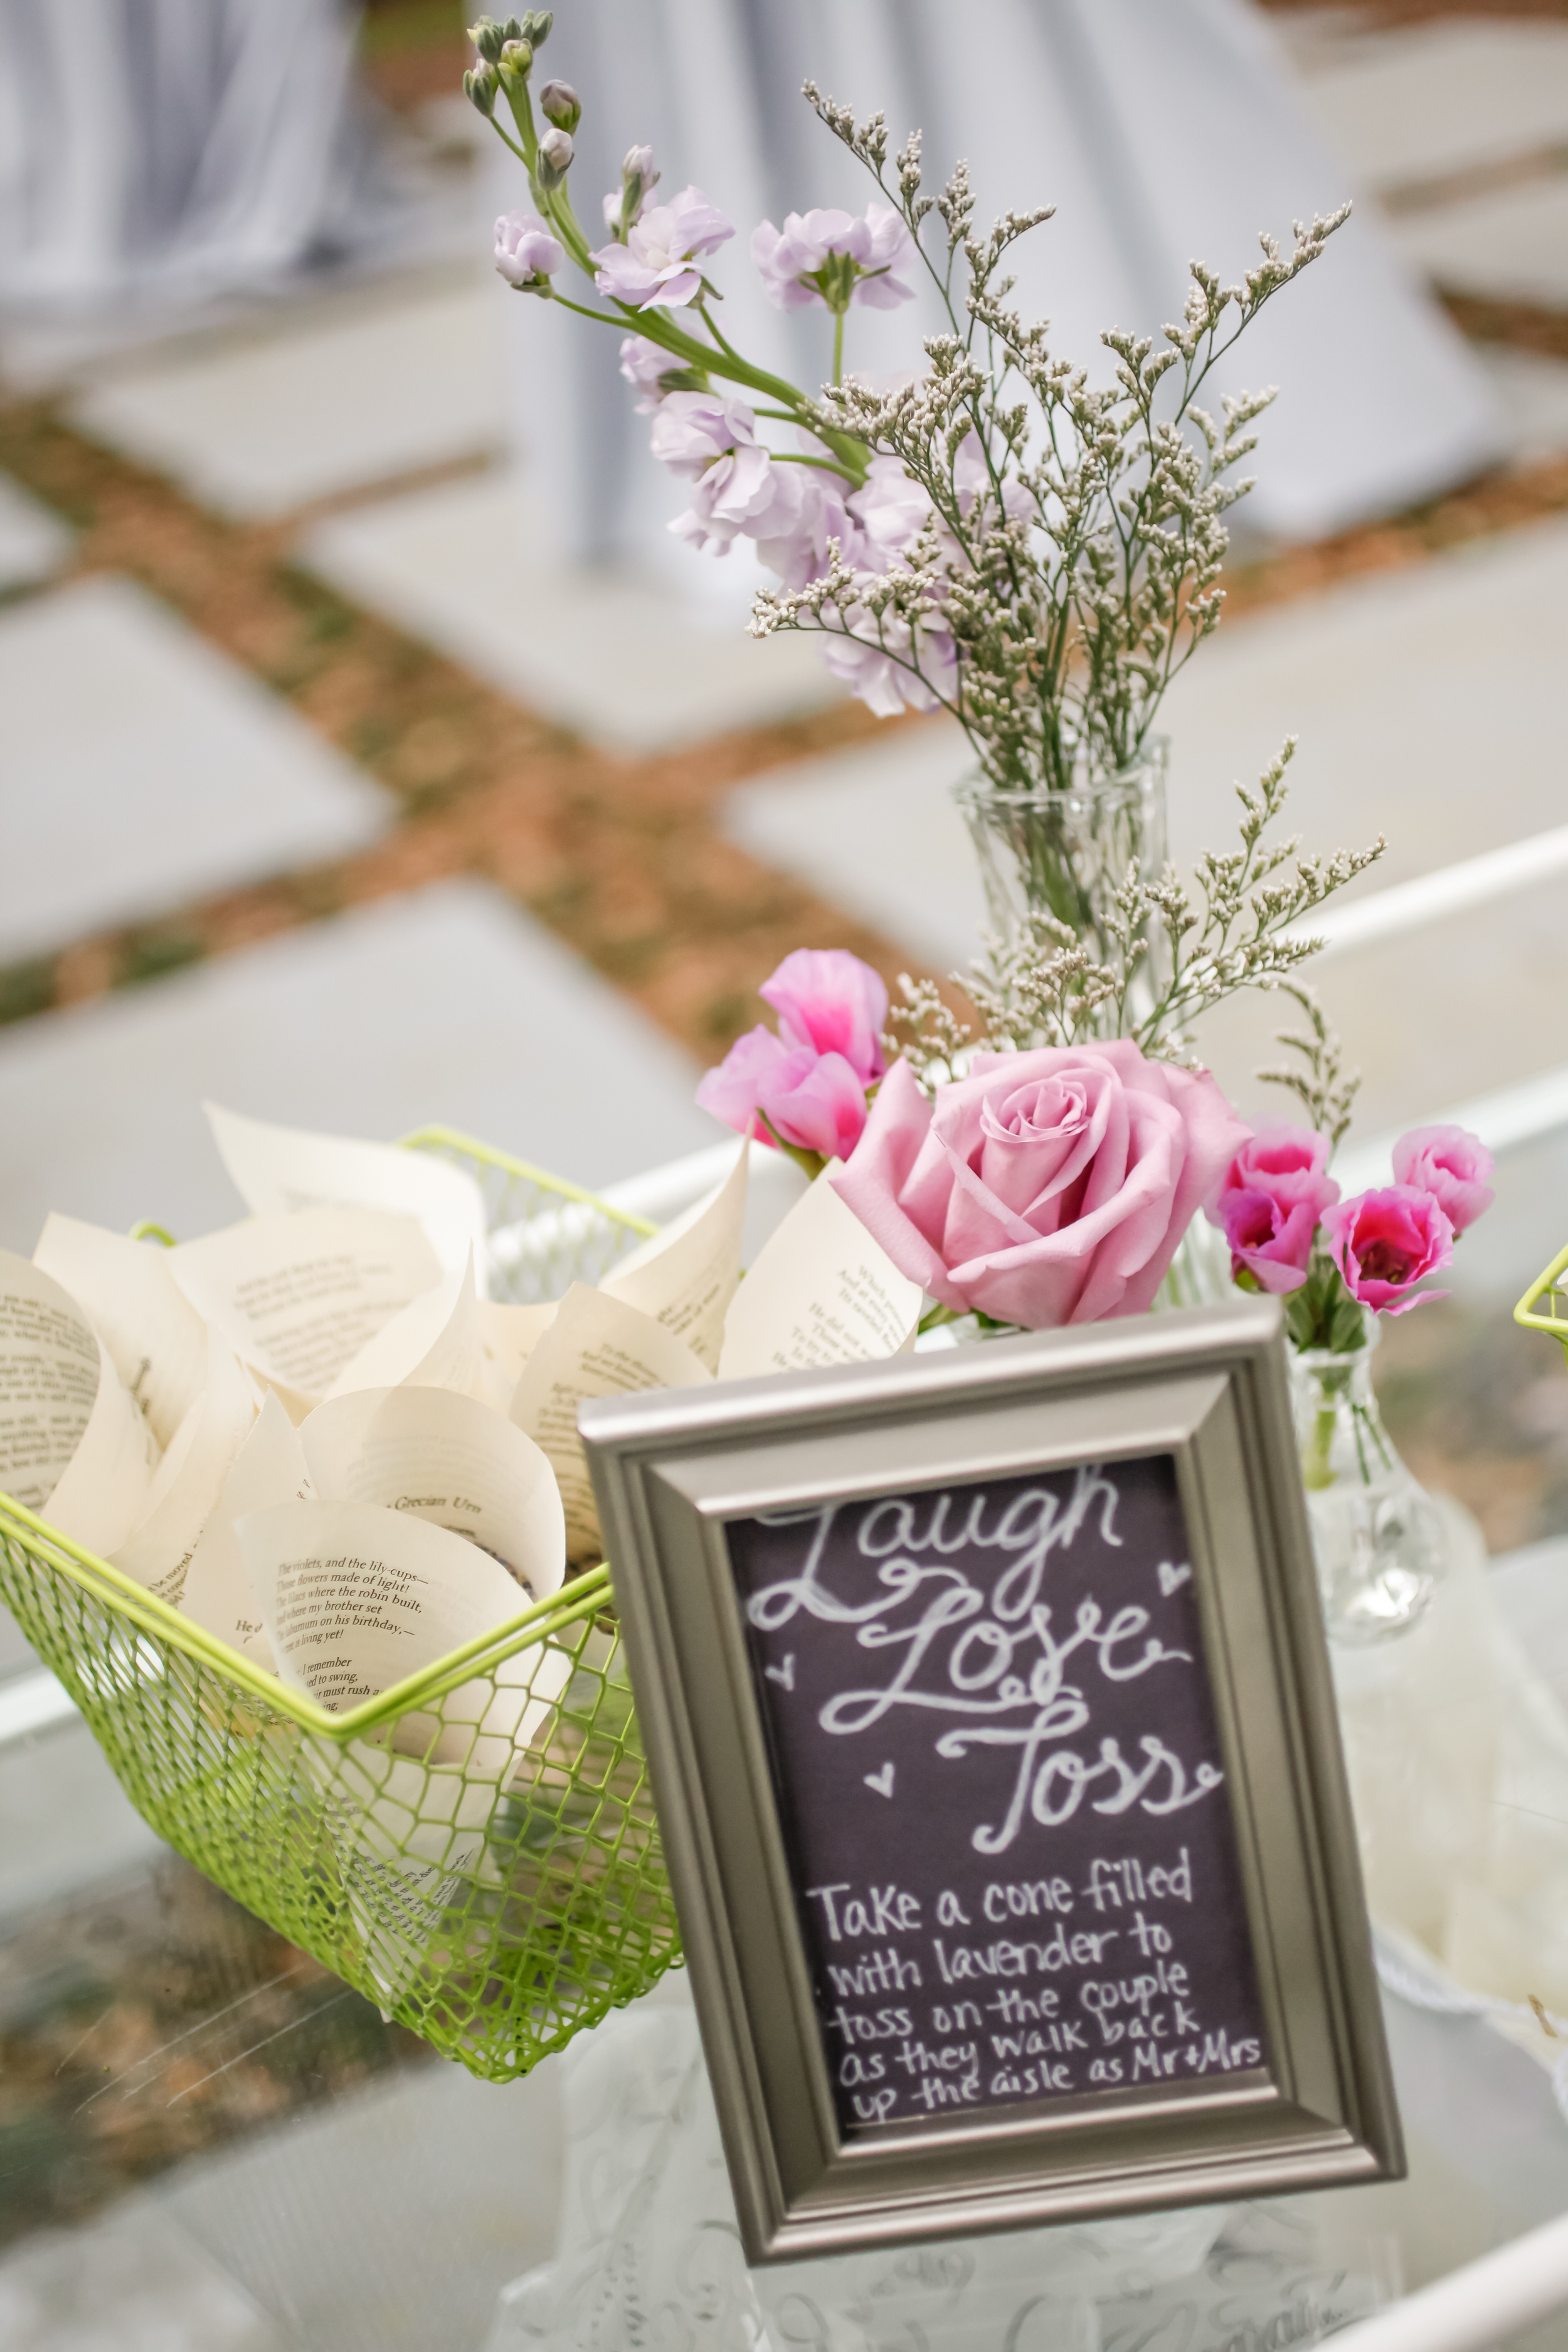 Pages of a vintage poem book made perfect cones for the lavender toss following the ceremony.